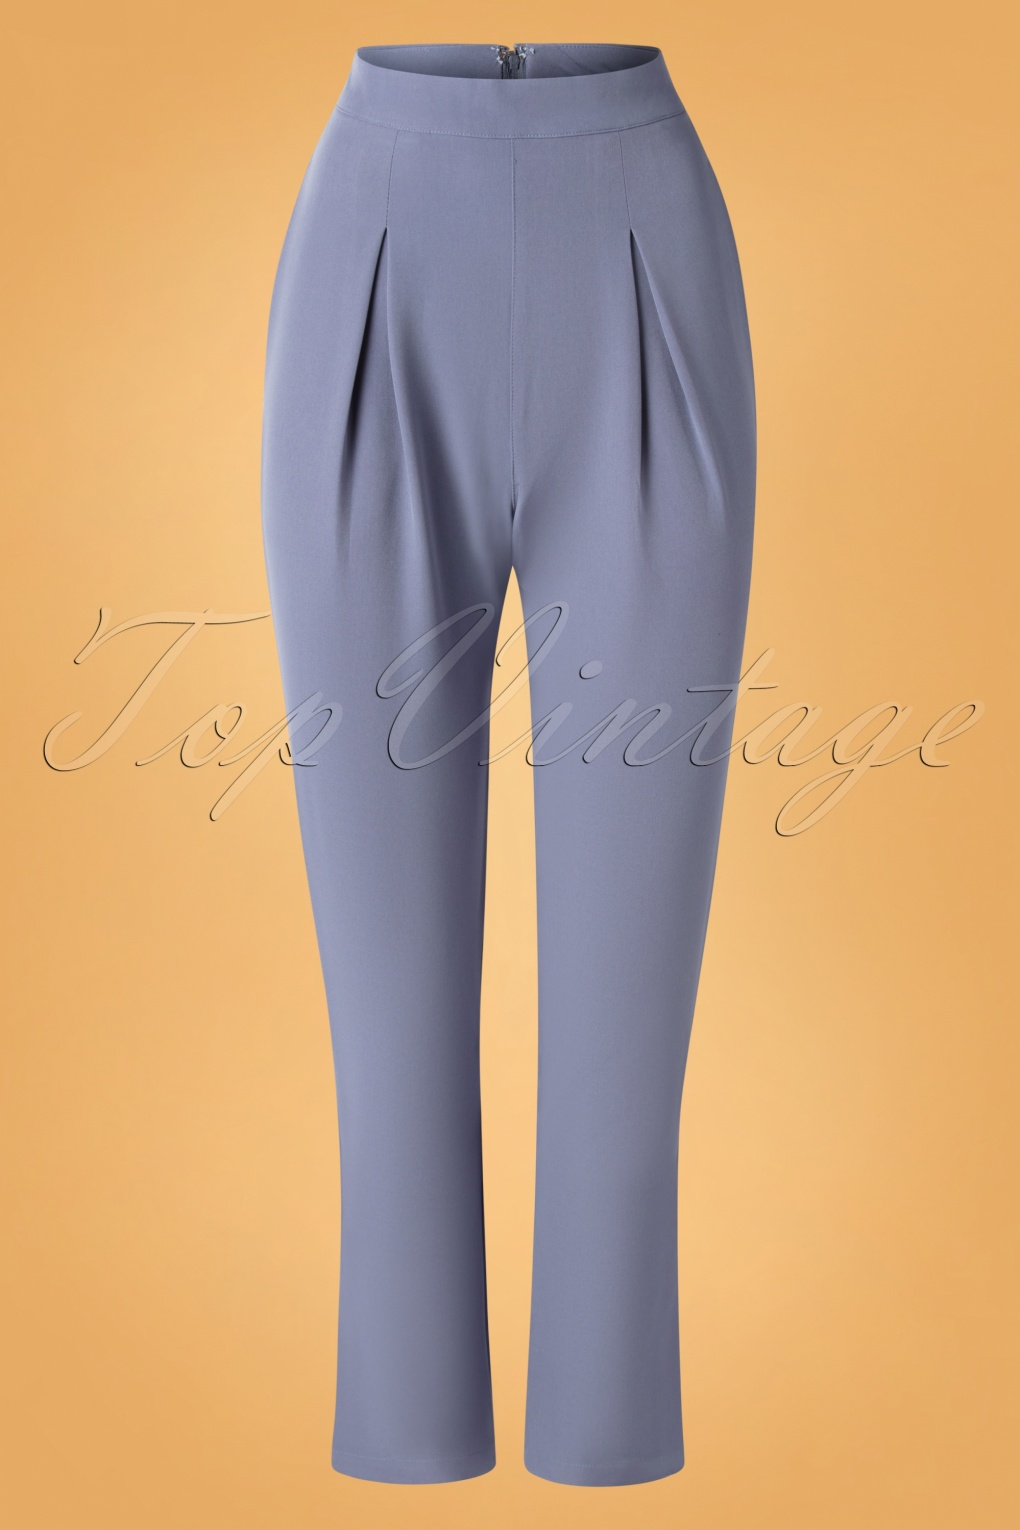 1960s Style Dresses, Clothing, Shoes UK 50s Wear Me Everywhere Trousers in Dusty Blue £36.71 AT vintagedancer.com